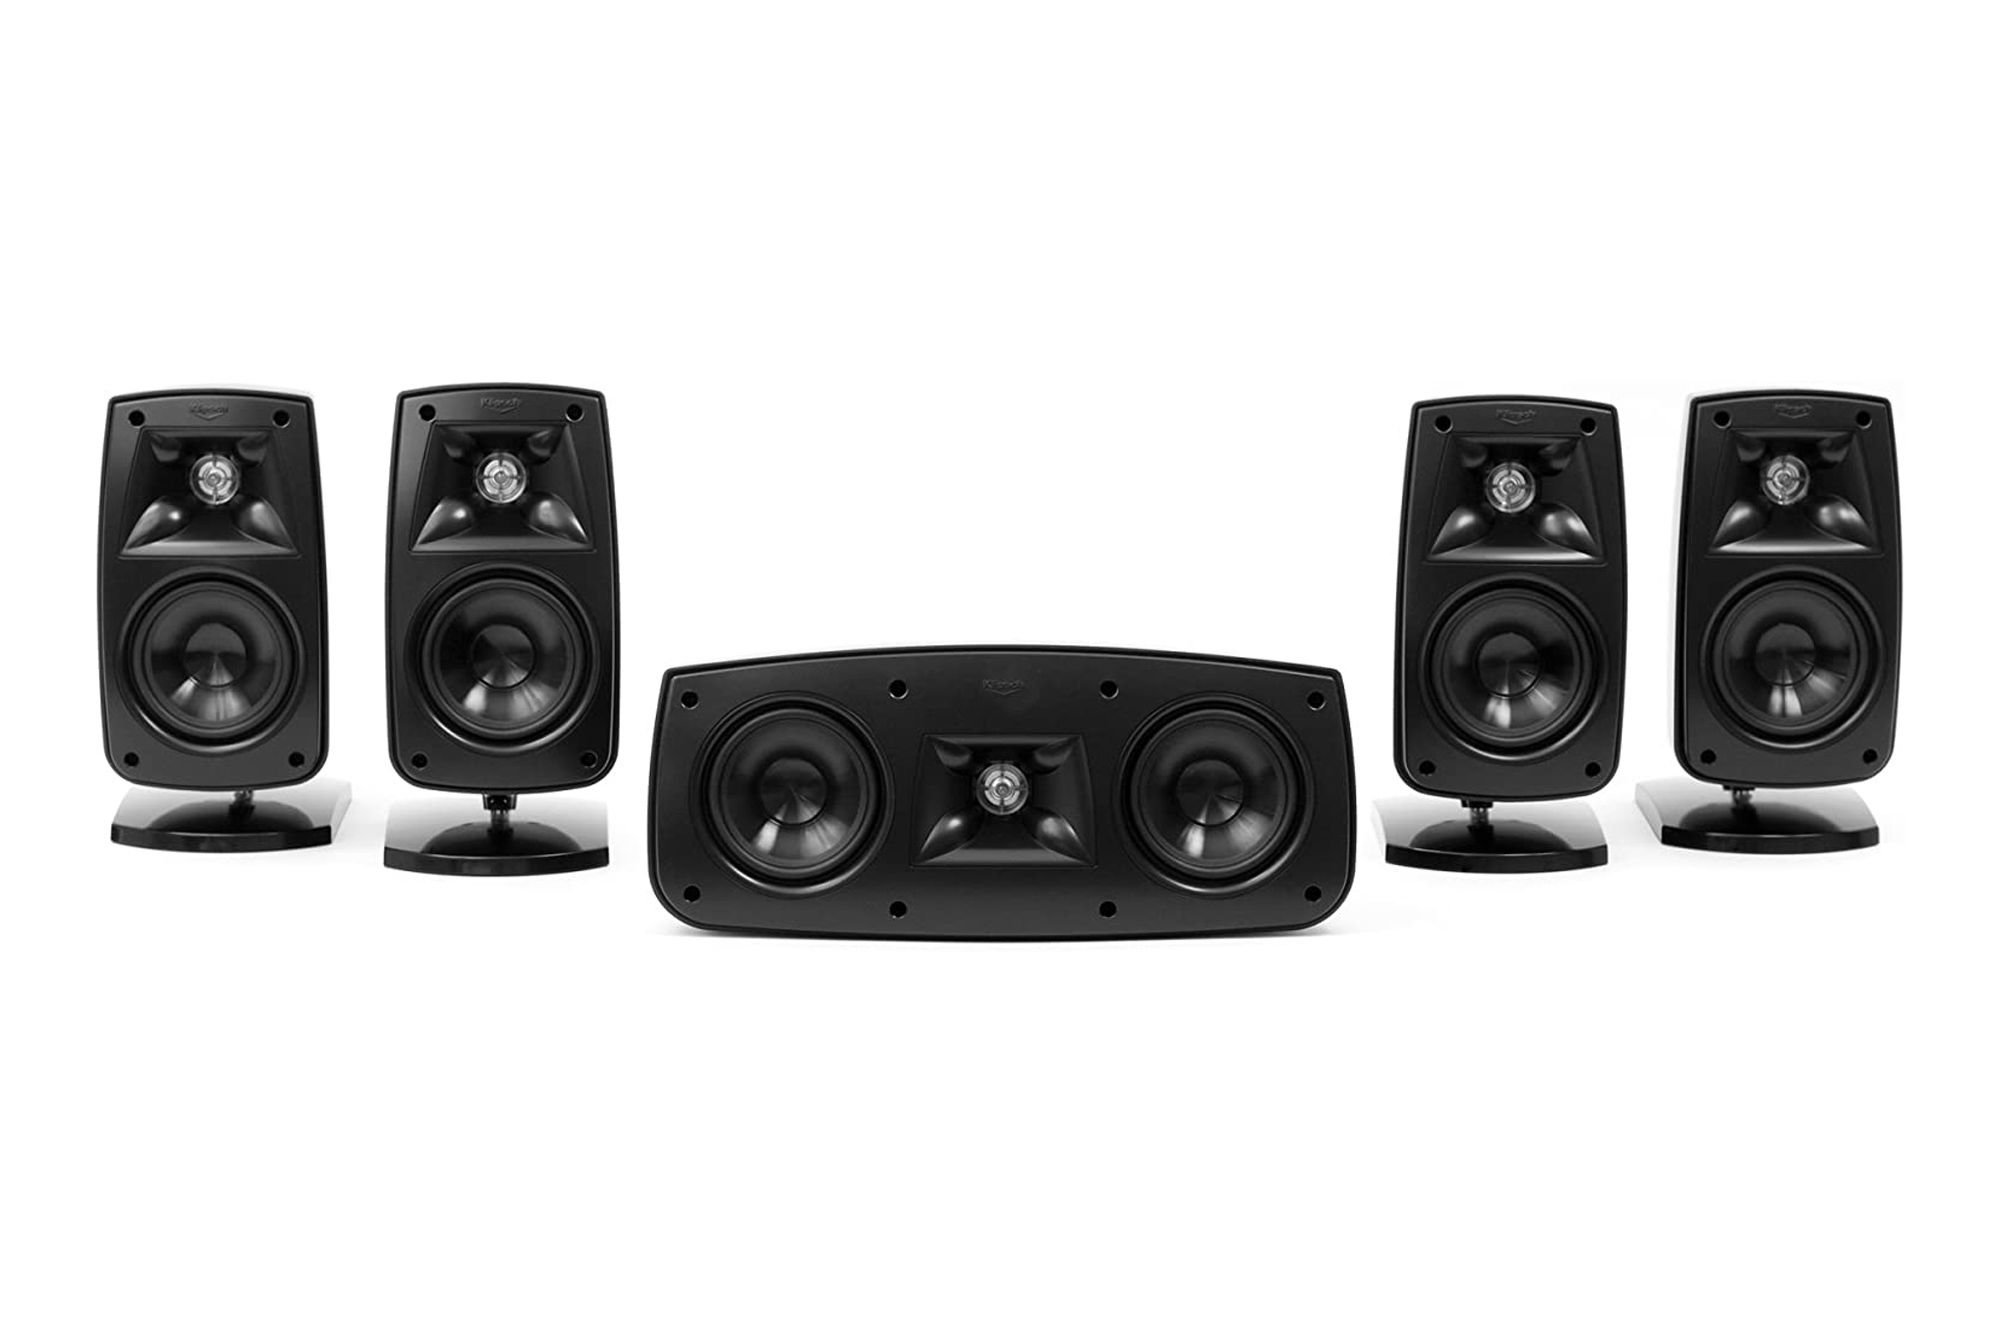 Quintet IV home theater system